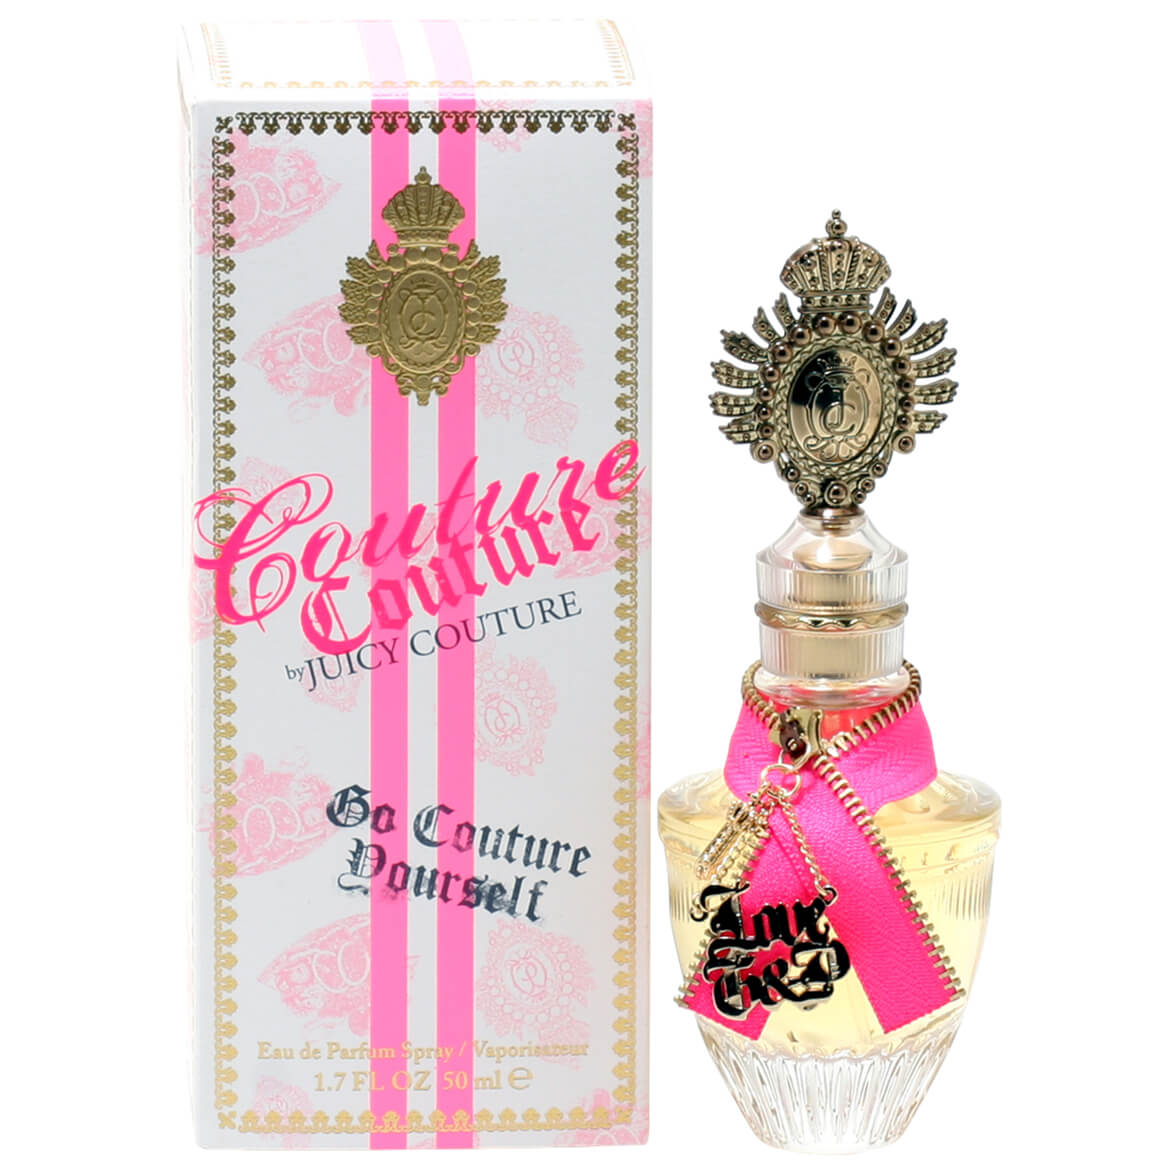 Juicy Couture Couture Couture for Women EDP, 1.7 fl. oz.-362240